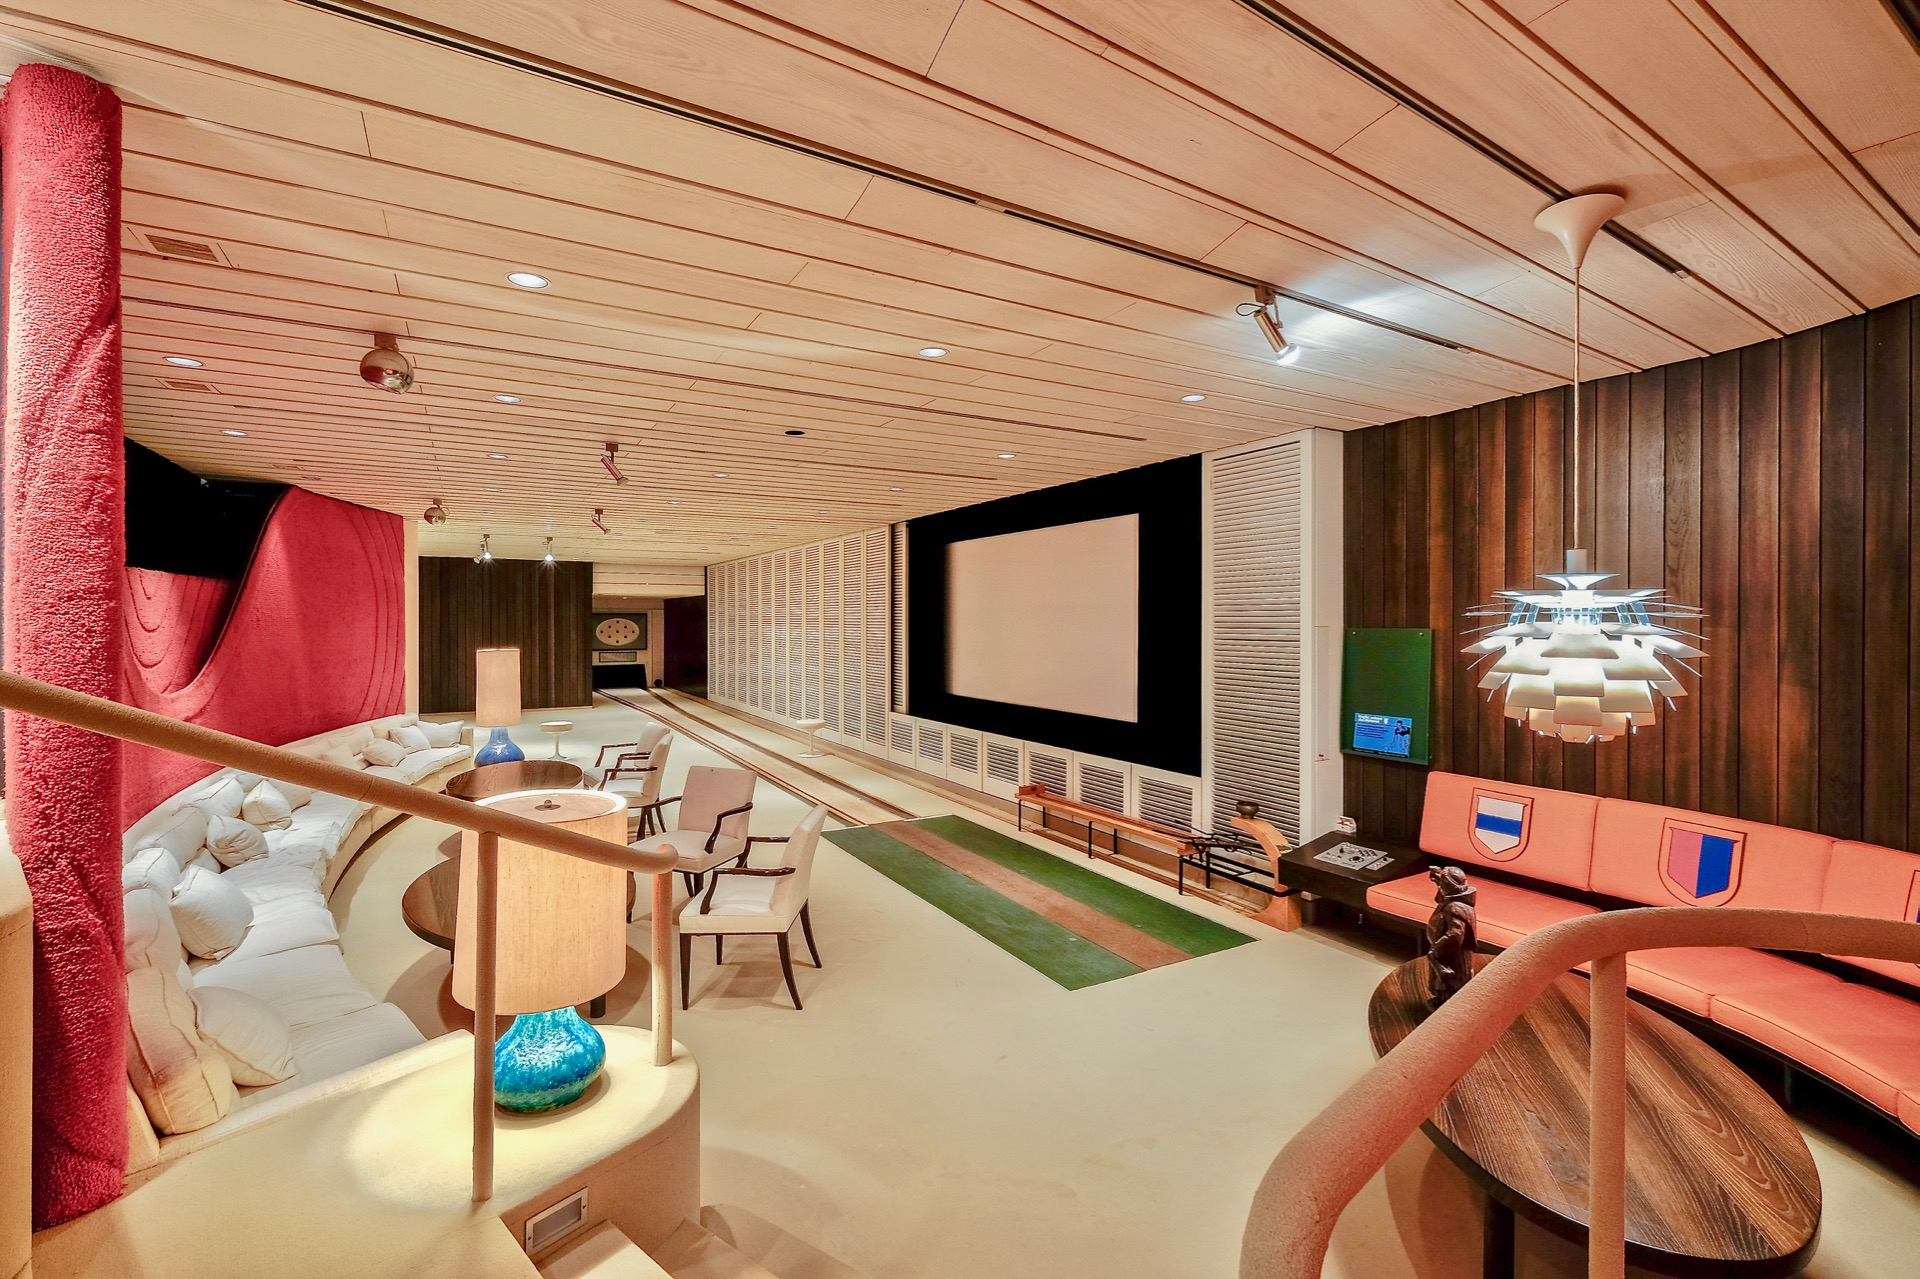 This secluded Swiss retreat has a host of ultra-luxurious amenities including a plush midcentury modern bowling lounge.